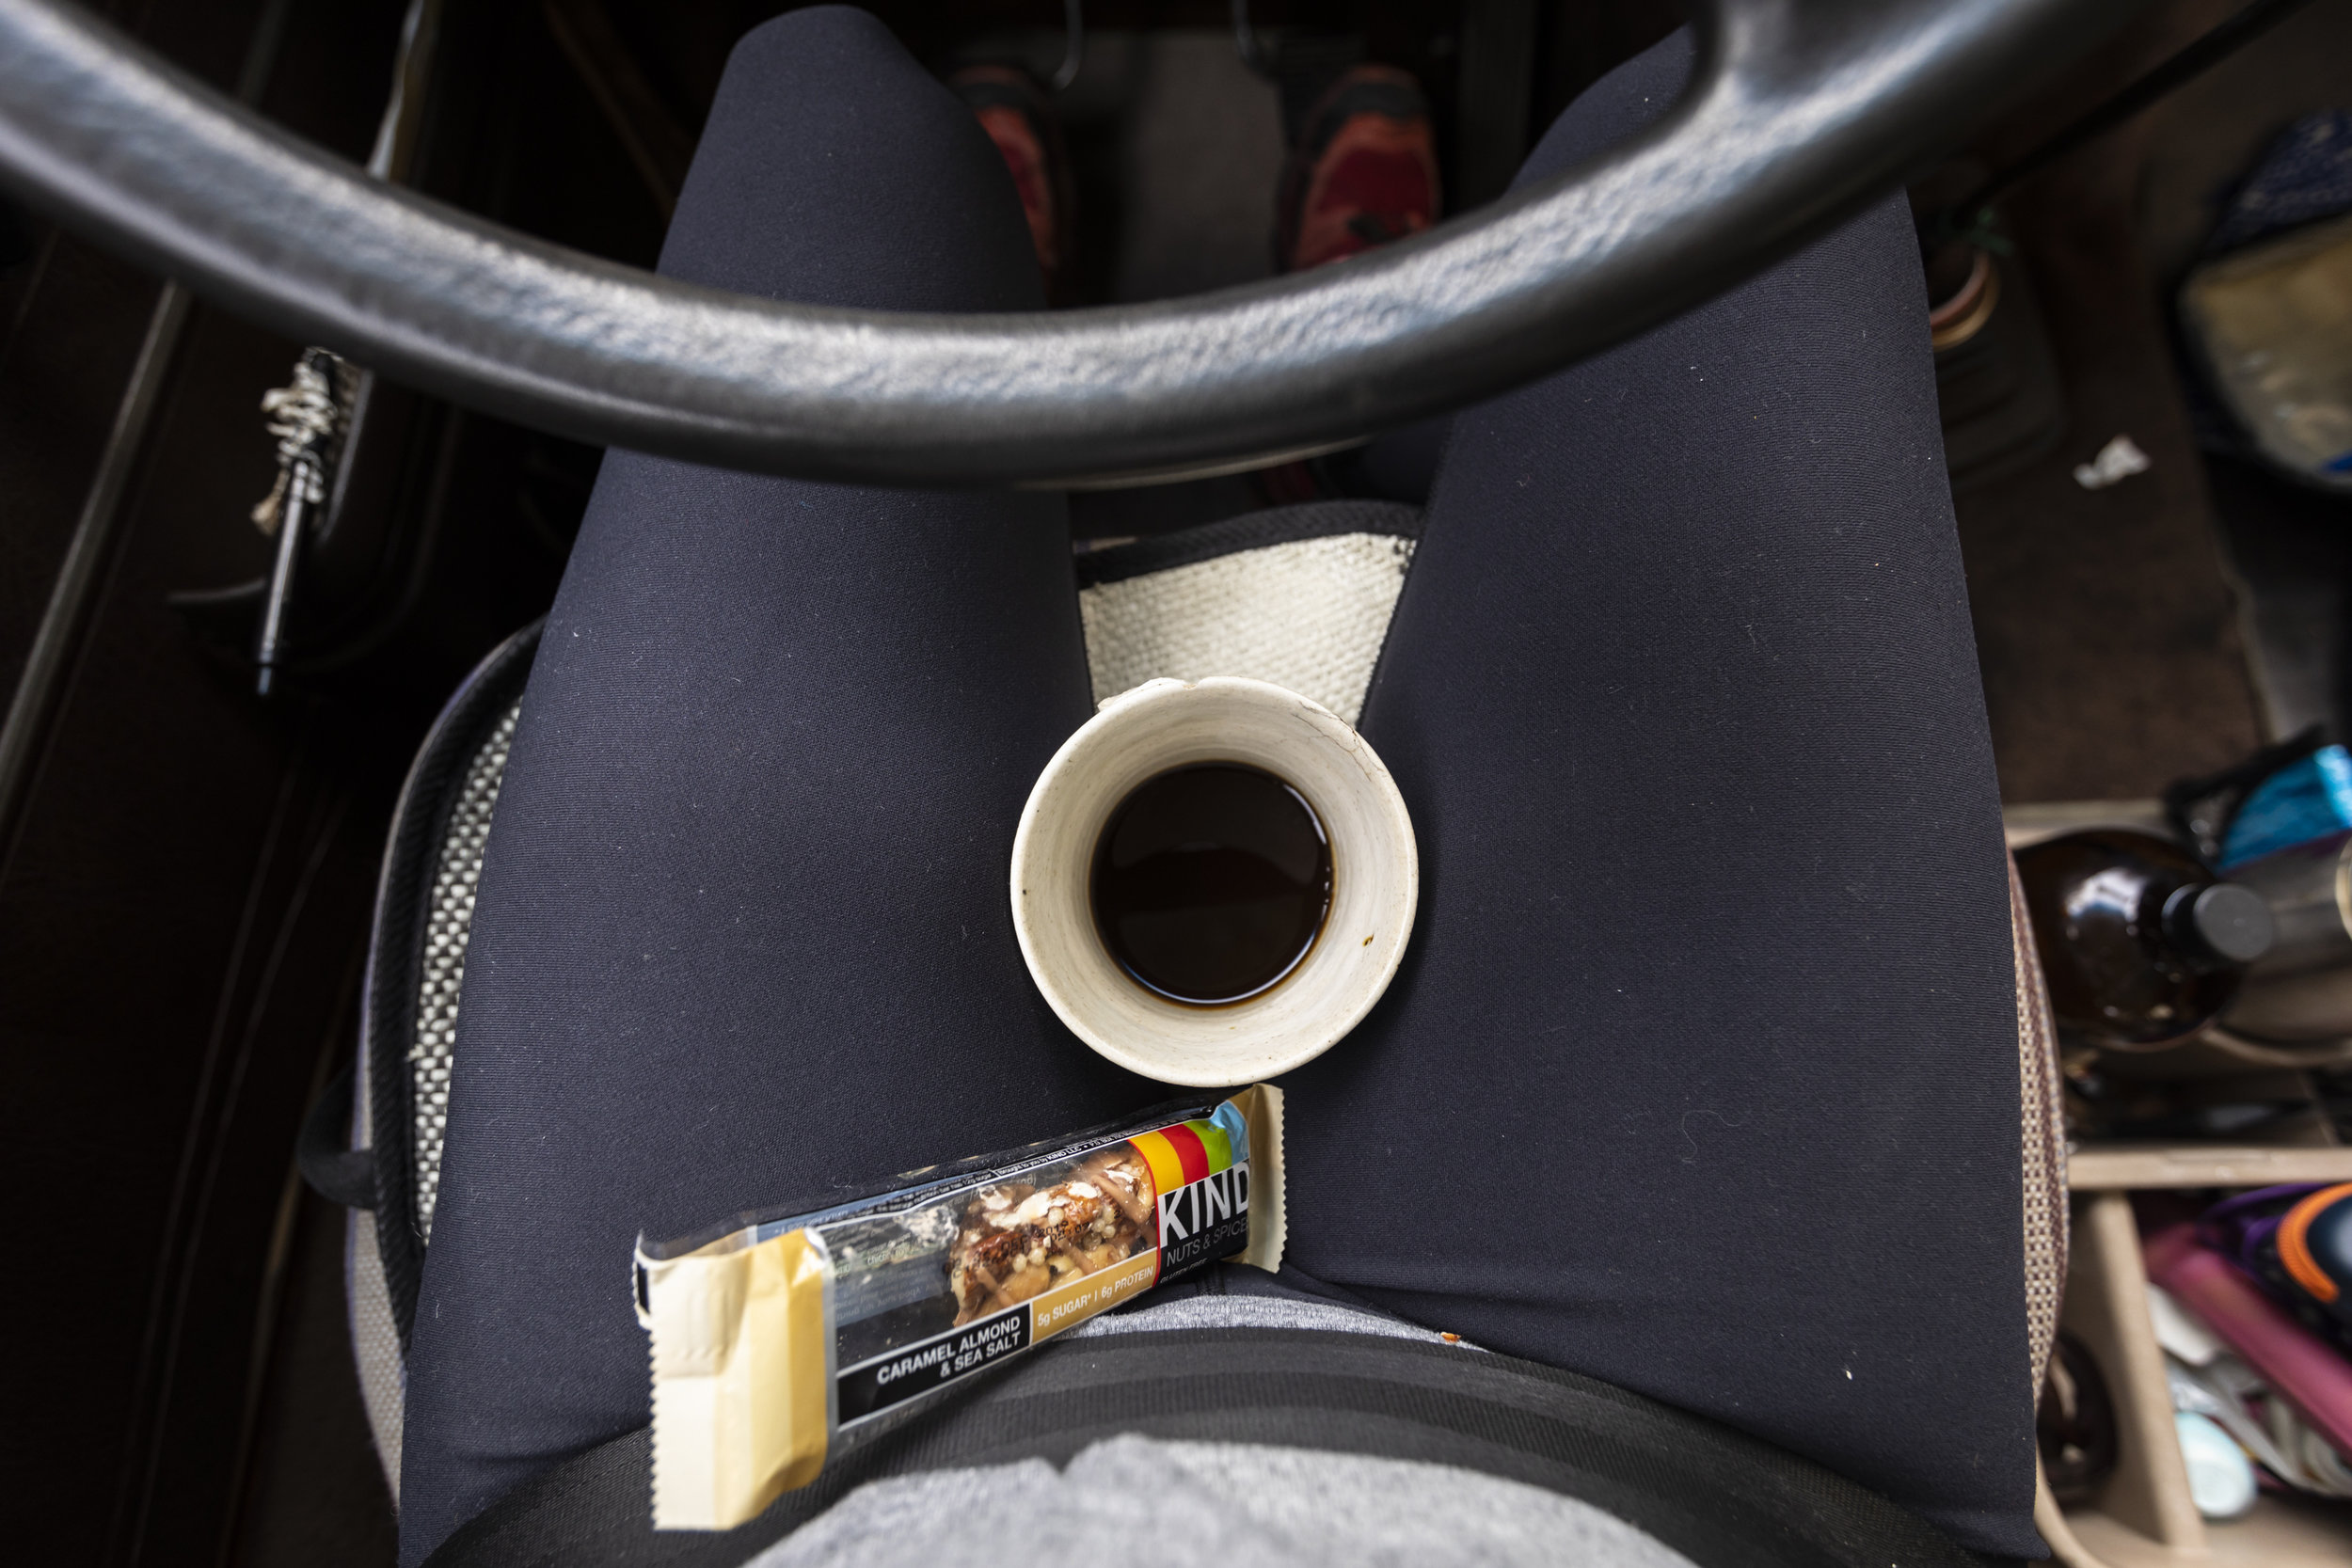 How I roll usually because the cup holder is just too far away, and coffee gets cold too fast.